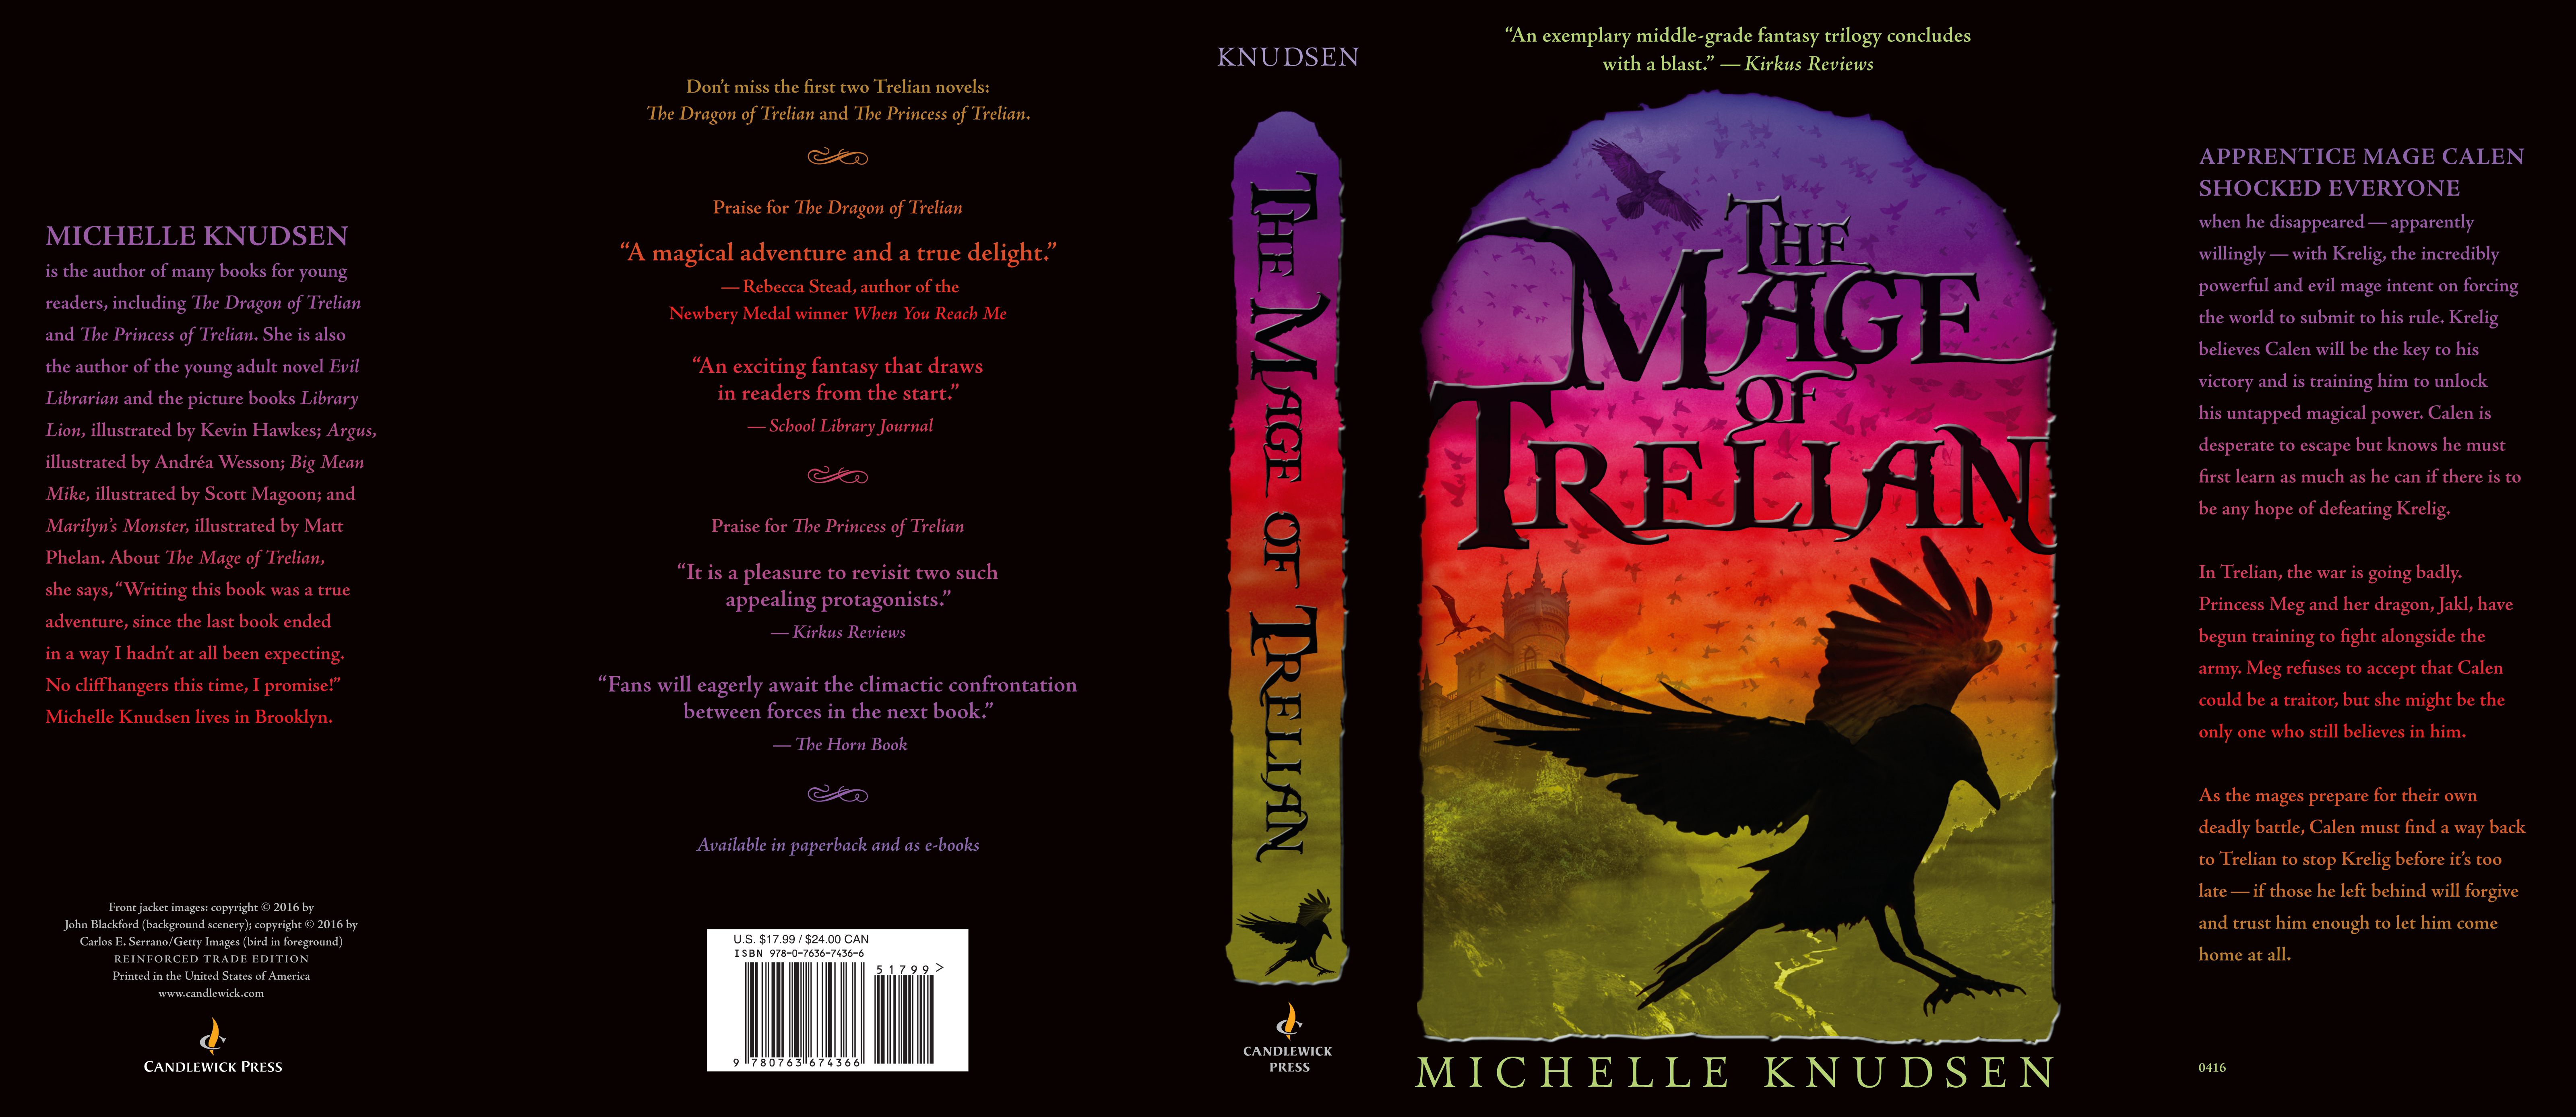 Full jacket for THE MAGE OF TRELIAN